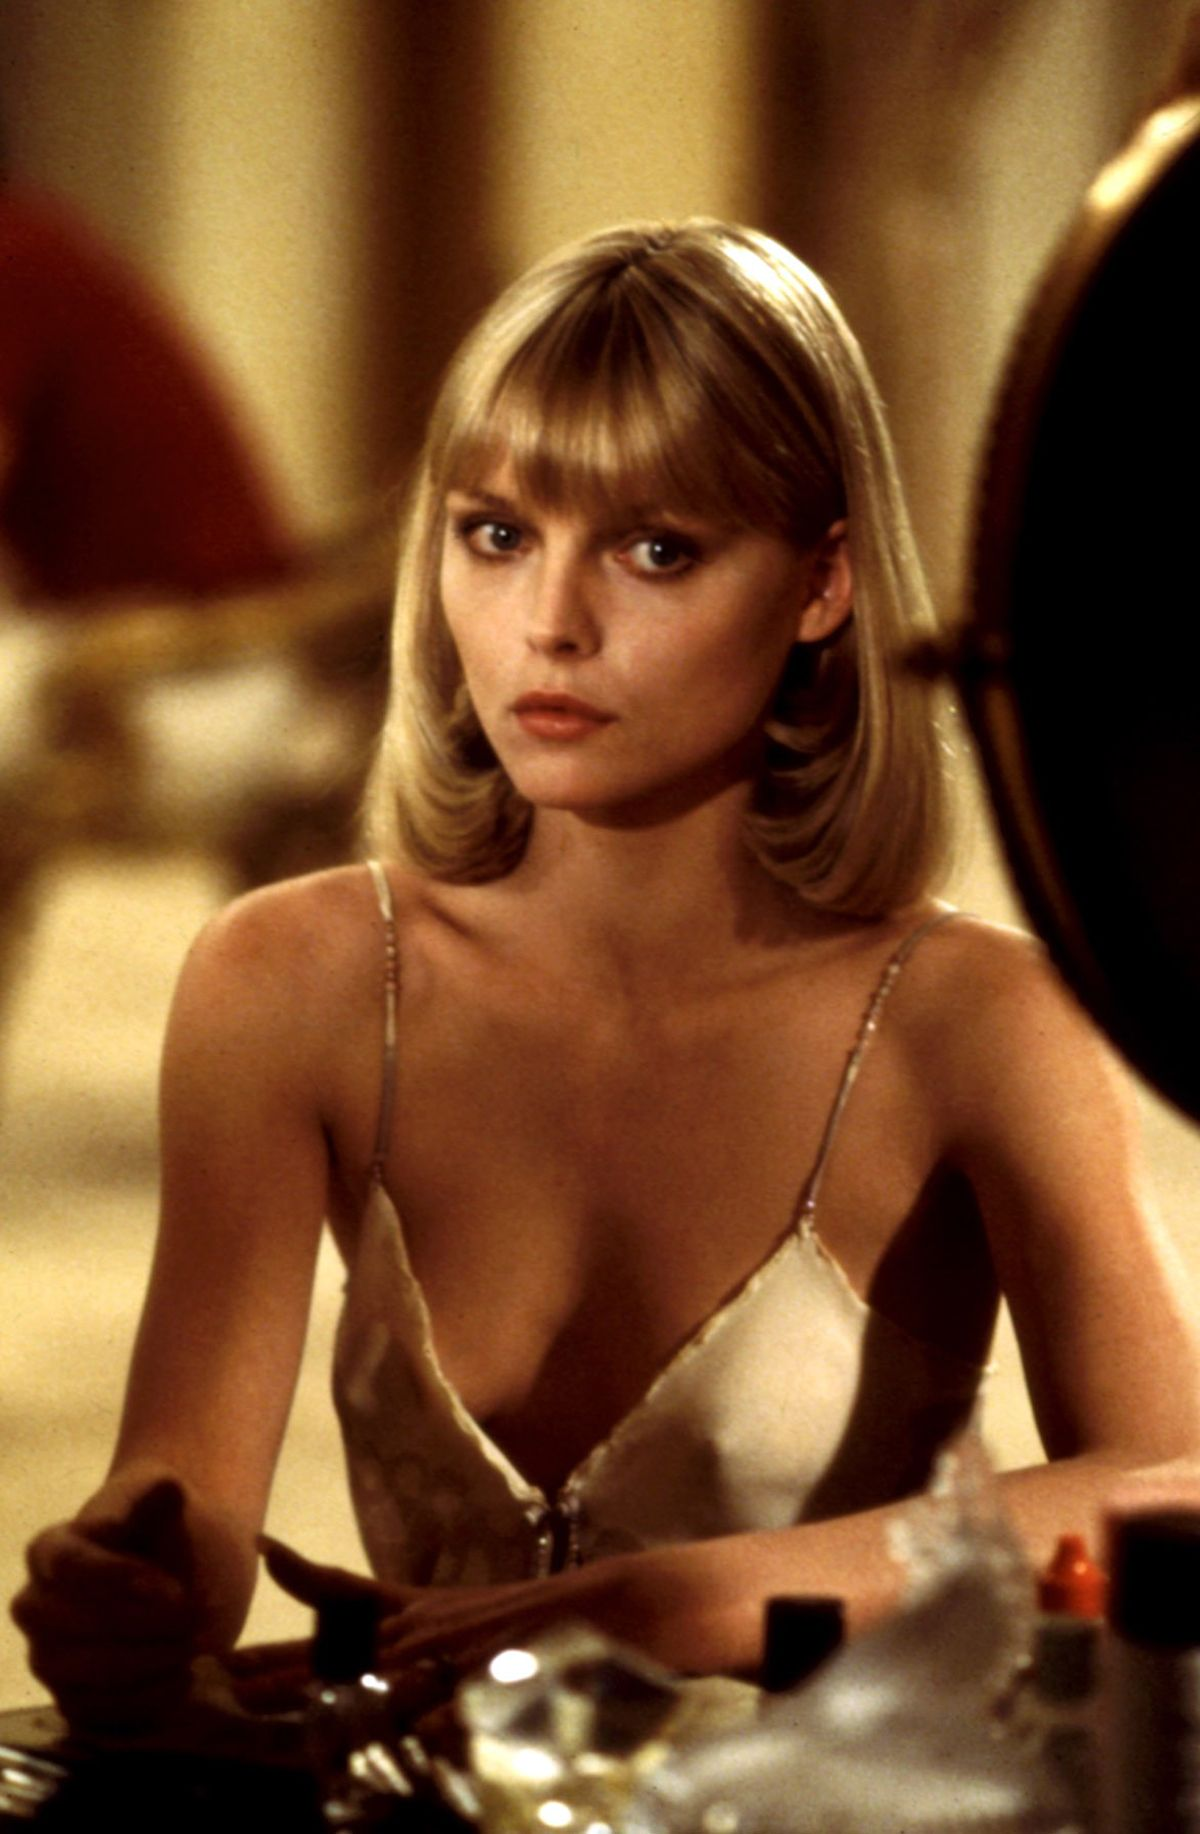 Michelle Pfeiffer's signature role may have been portraying Tony Montana's icy arm candy in Scarface